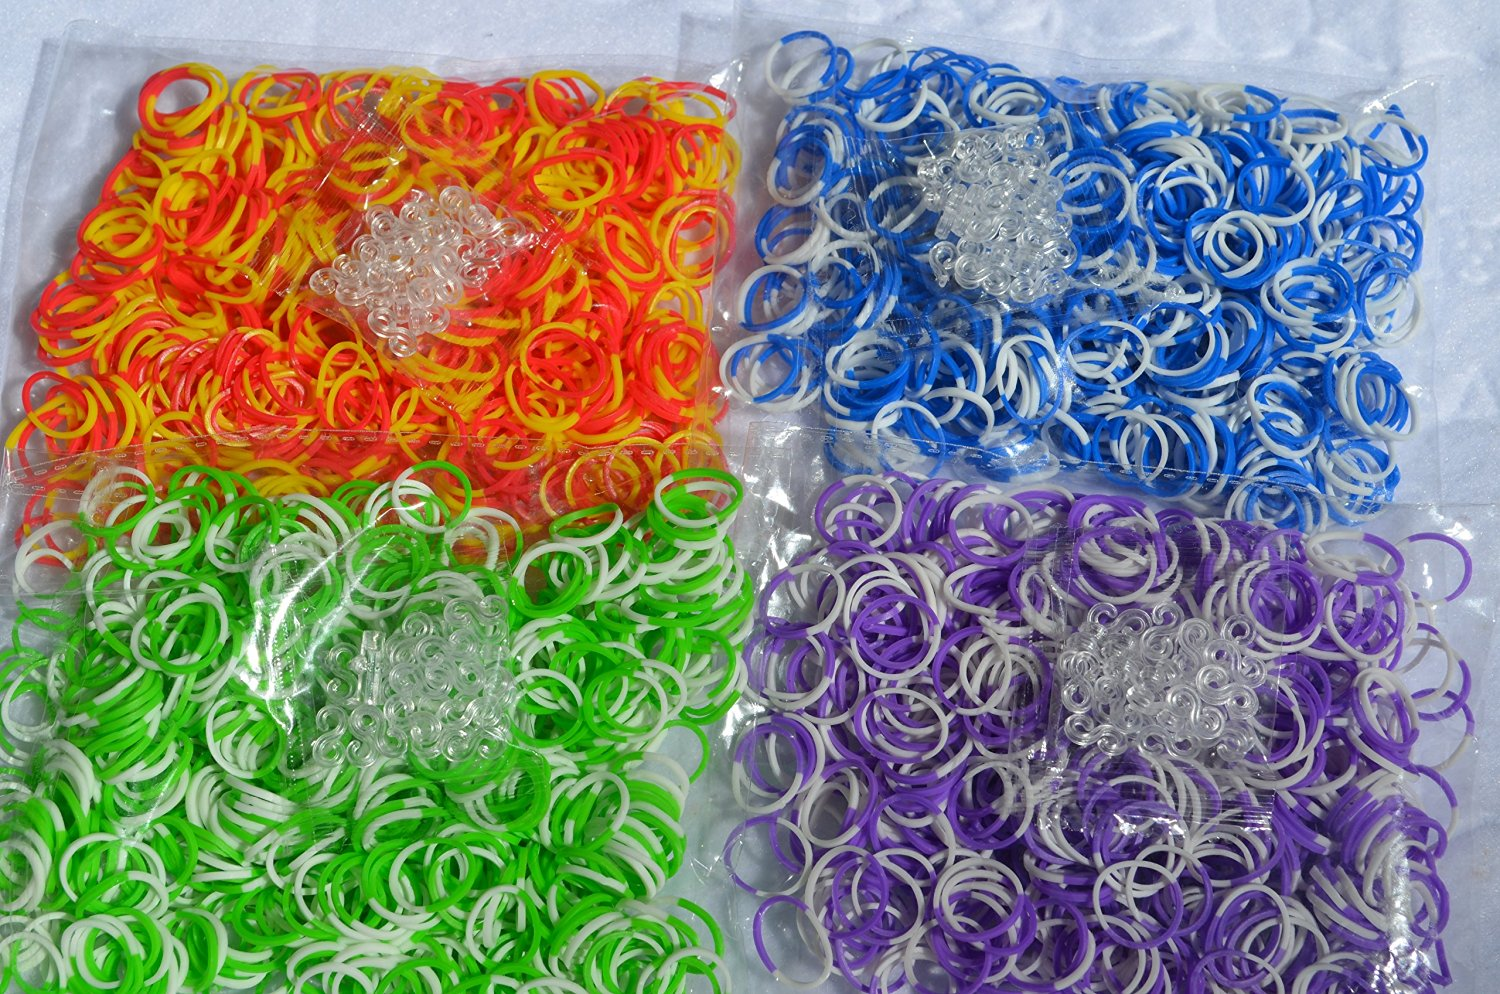 2400 pc Rainbow Tie Dye Rubber Bands - Loom Band Refill Set - 4 Colors with 100 Clips - Make Rubber Band Bracelets - Fully Compatible with All Rubber Band Looms - 600 Each of 4 Different Colors - Red+Yellow, White+Blue, White+Green, White+Purple - 100% Quality Guarantee